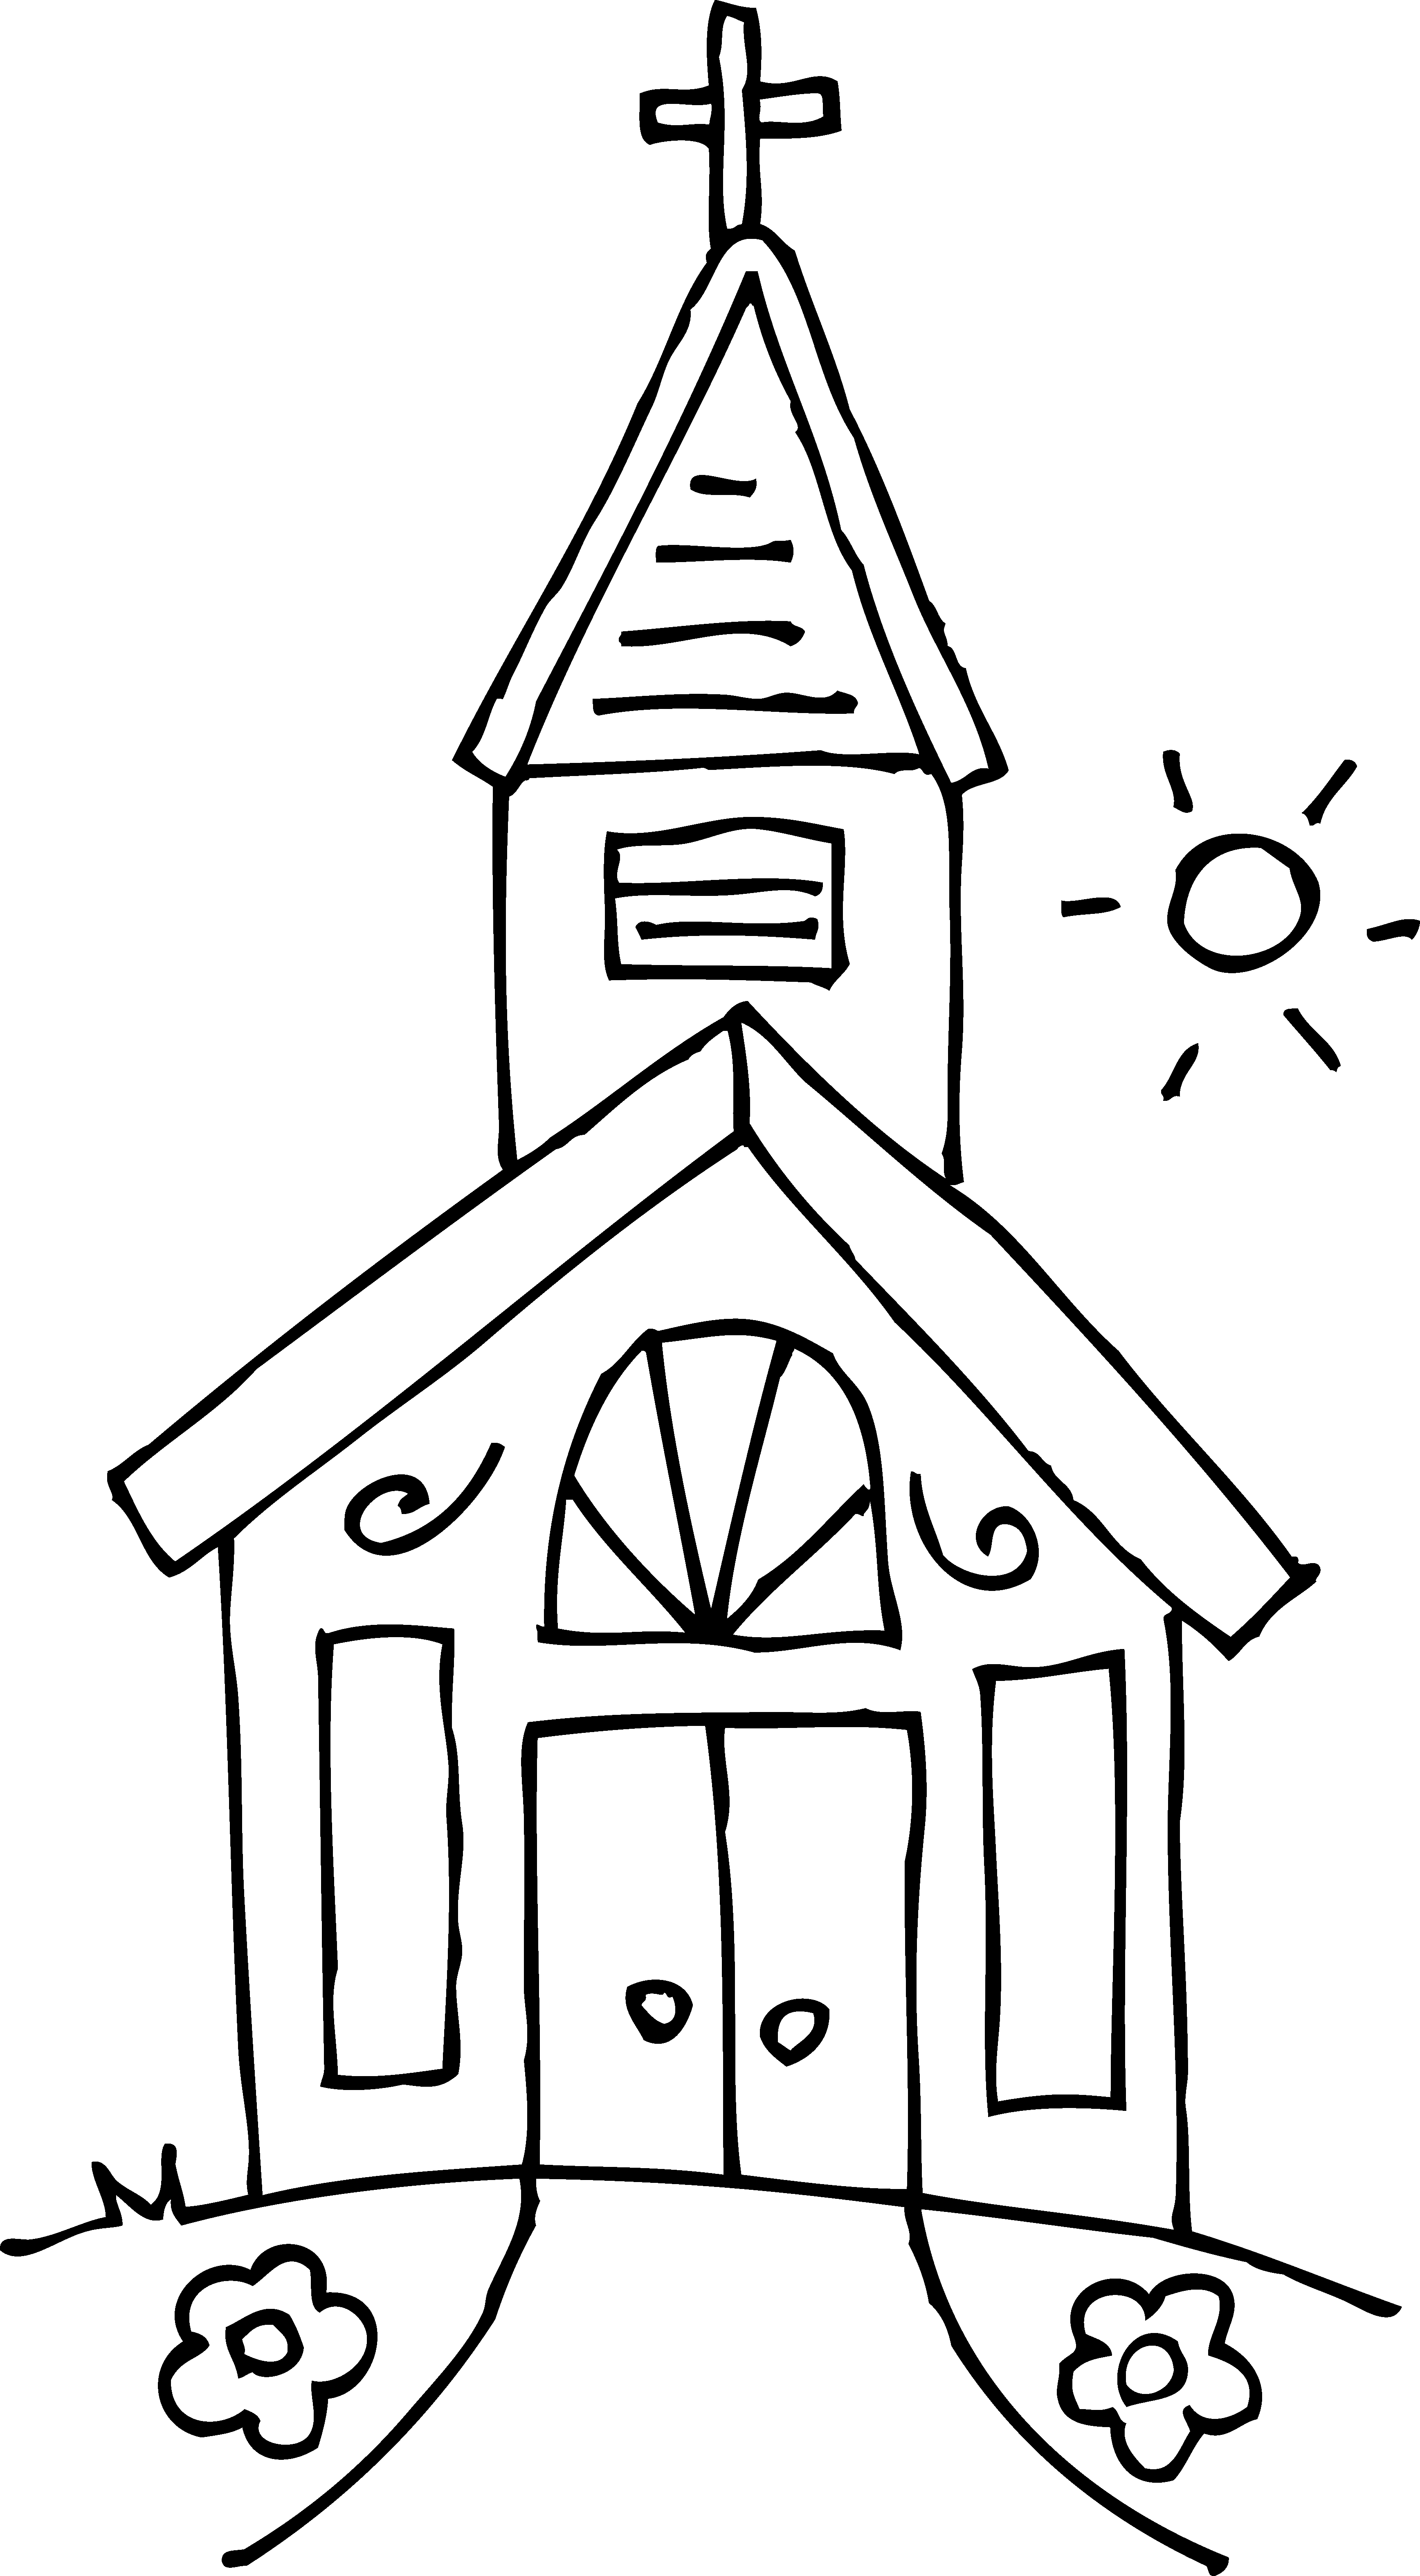 Small church clip art dromgfd - Free Church Clipart